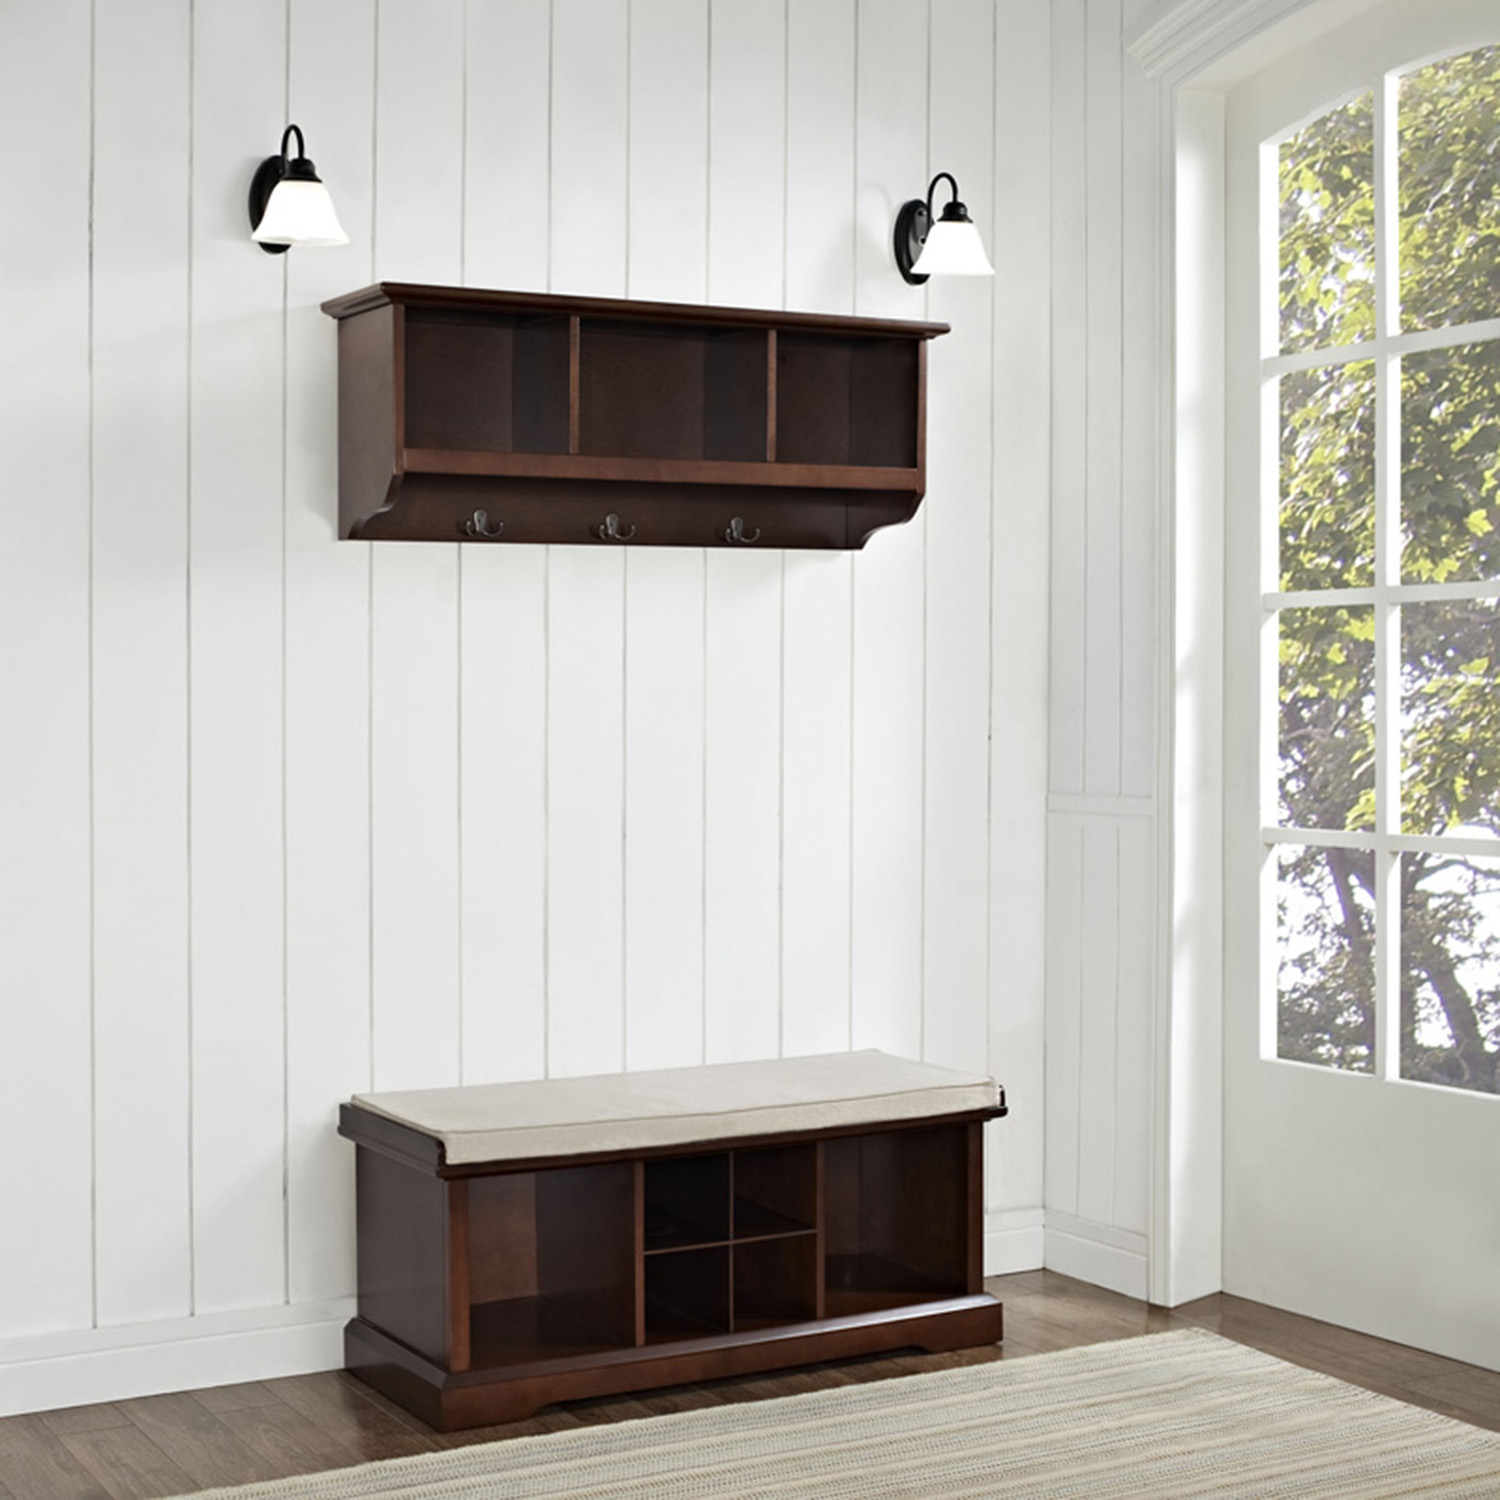 Brennan 2 Pieces Entryway Bench And Shelf Set Mahogany